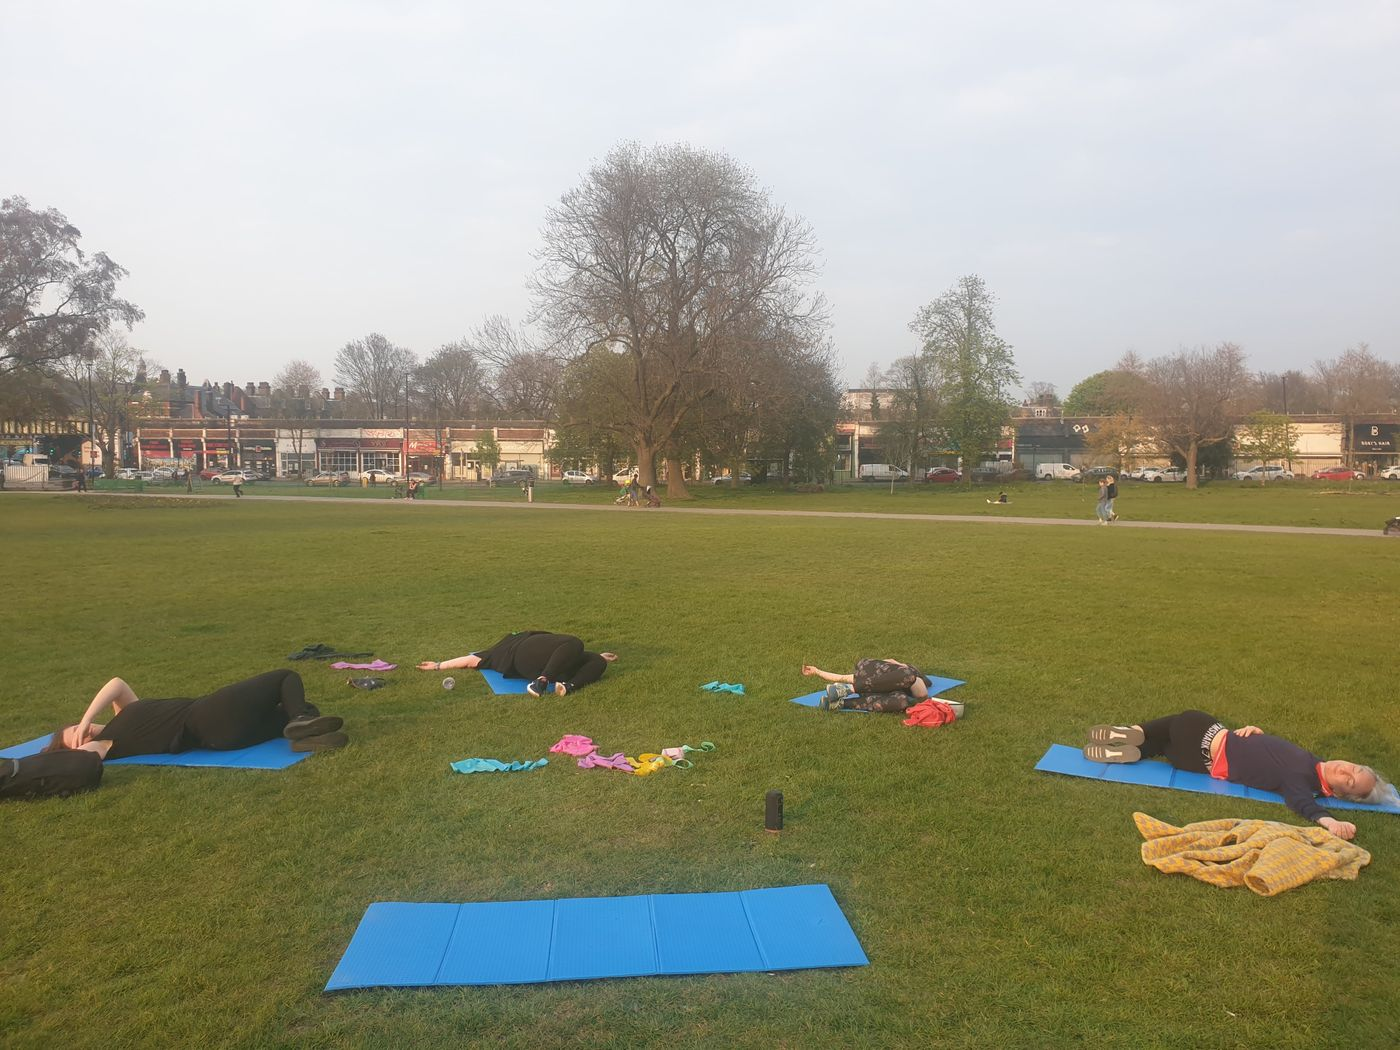 And.... stretch!! The team enjoying a well deserved supine twist after their Empowered workout at Brockwell Park